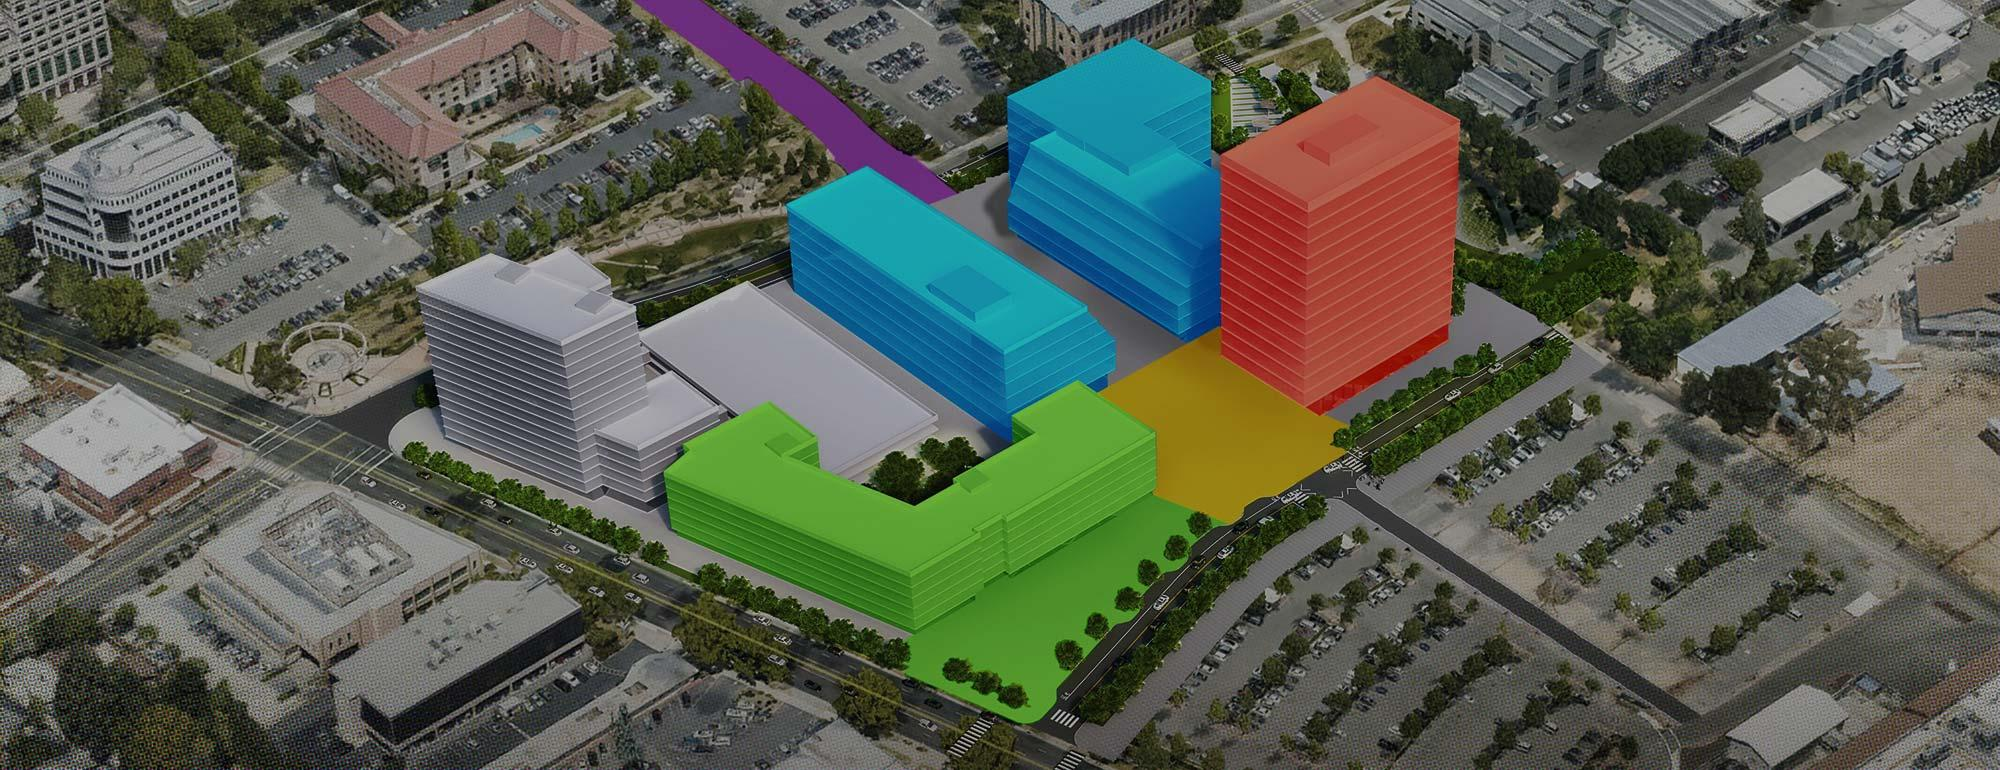 Aerial view showing the proposed Aggie Square development